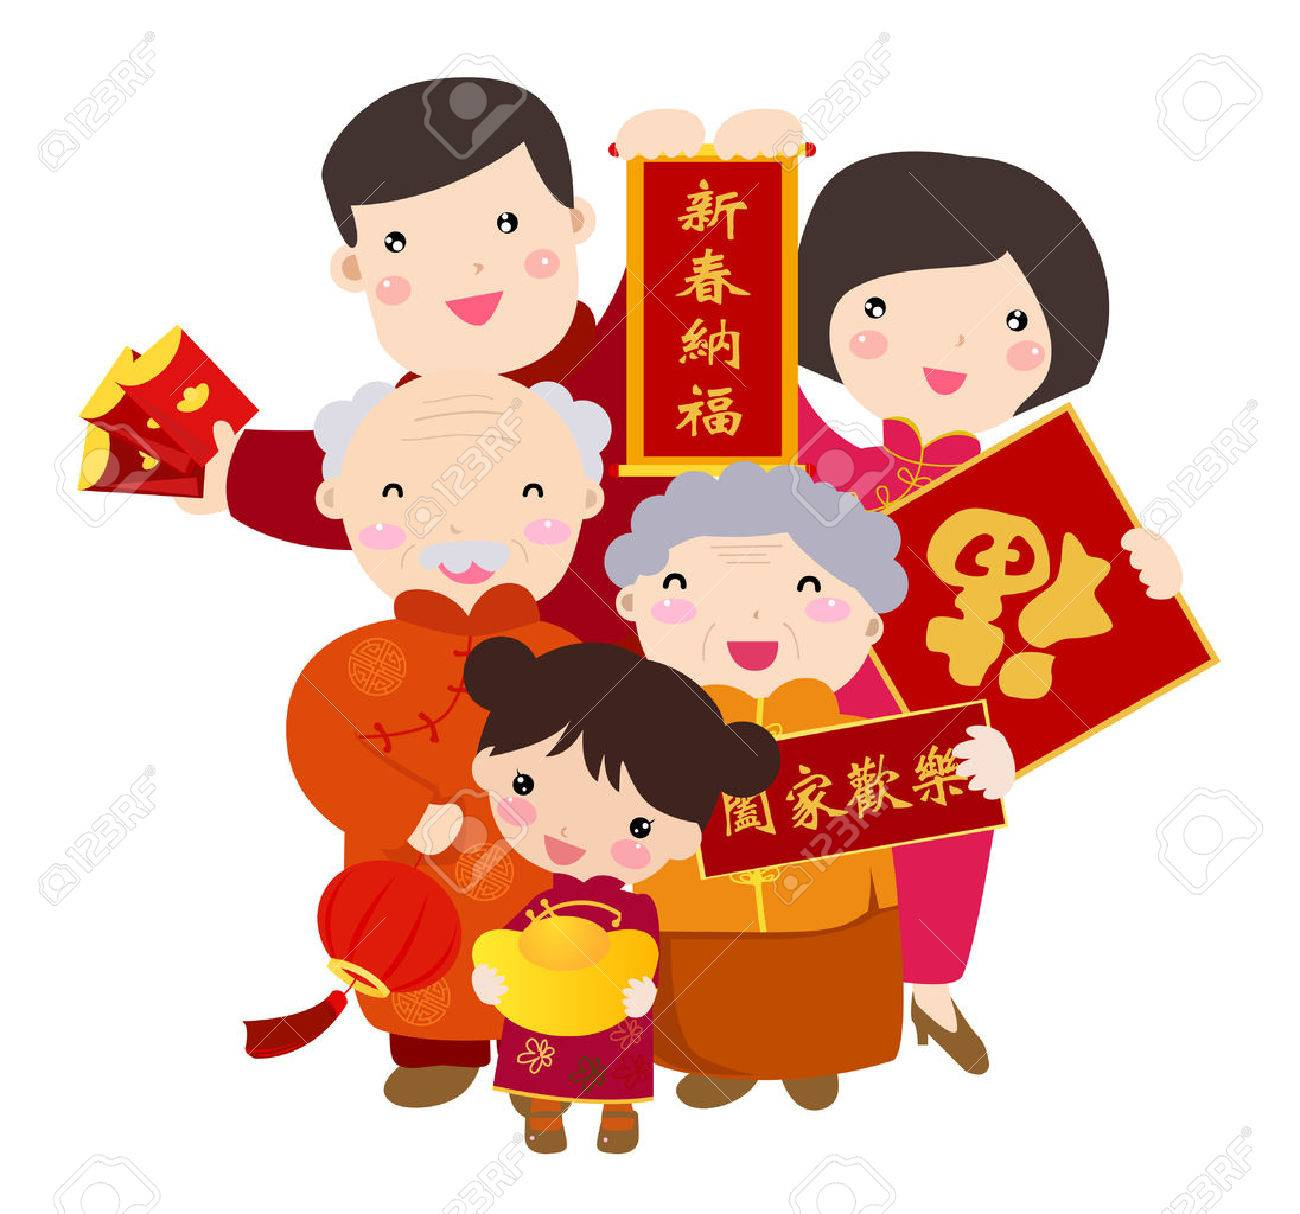 A traditional Chinese new year celebration.